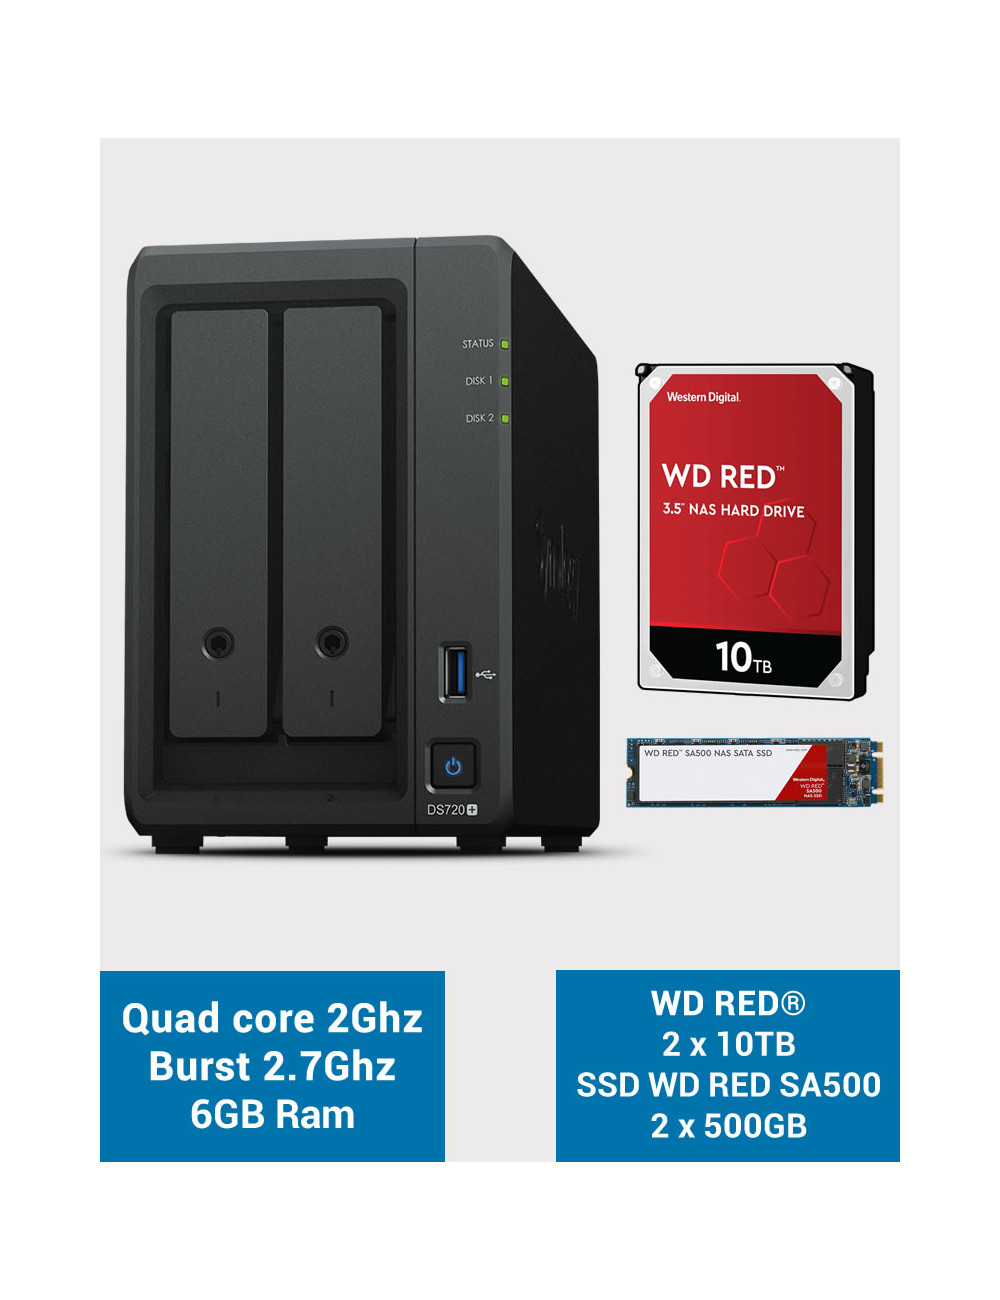 Synology DS720+ 6Go CACHE SSD M.2 WD RED 20To (2x10To)